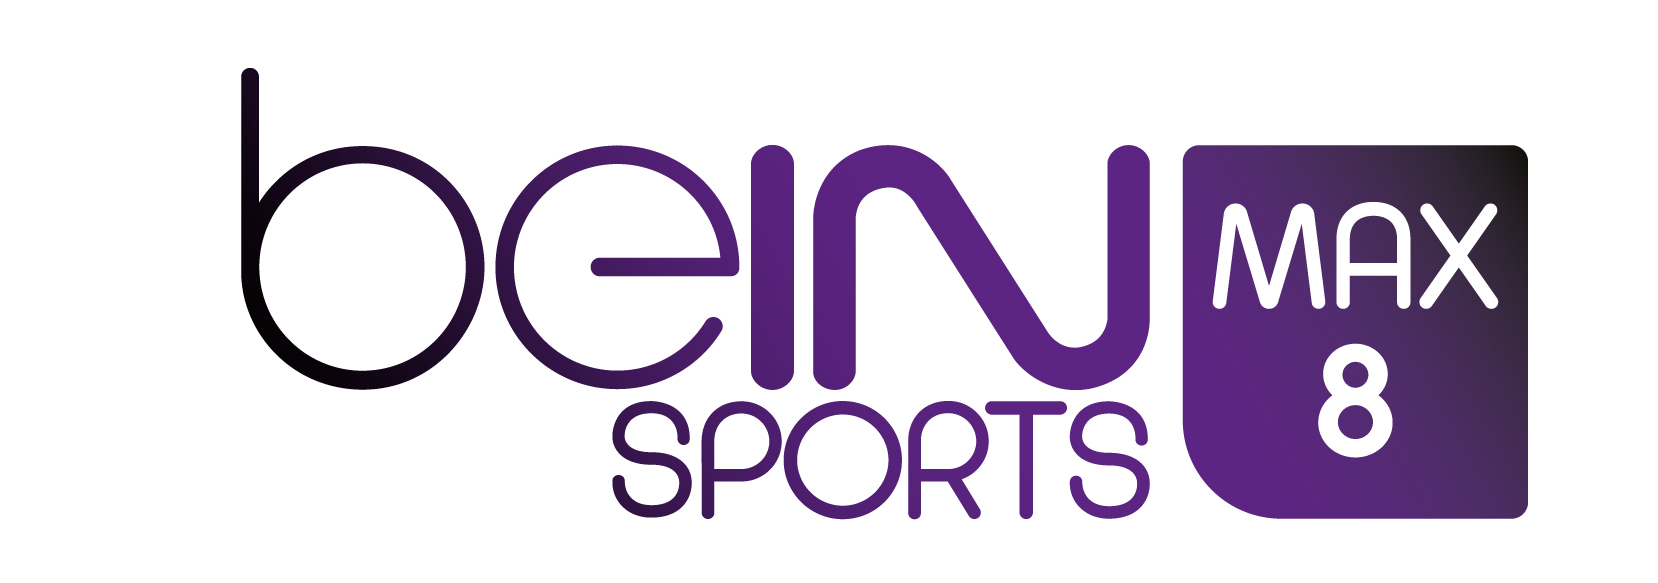 4tvsport | for watching sports tv channels, and Movies